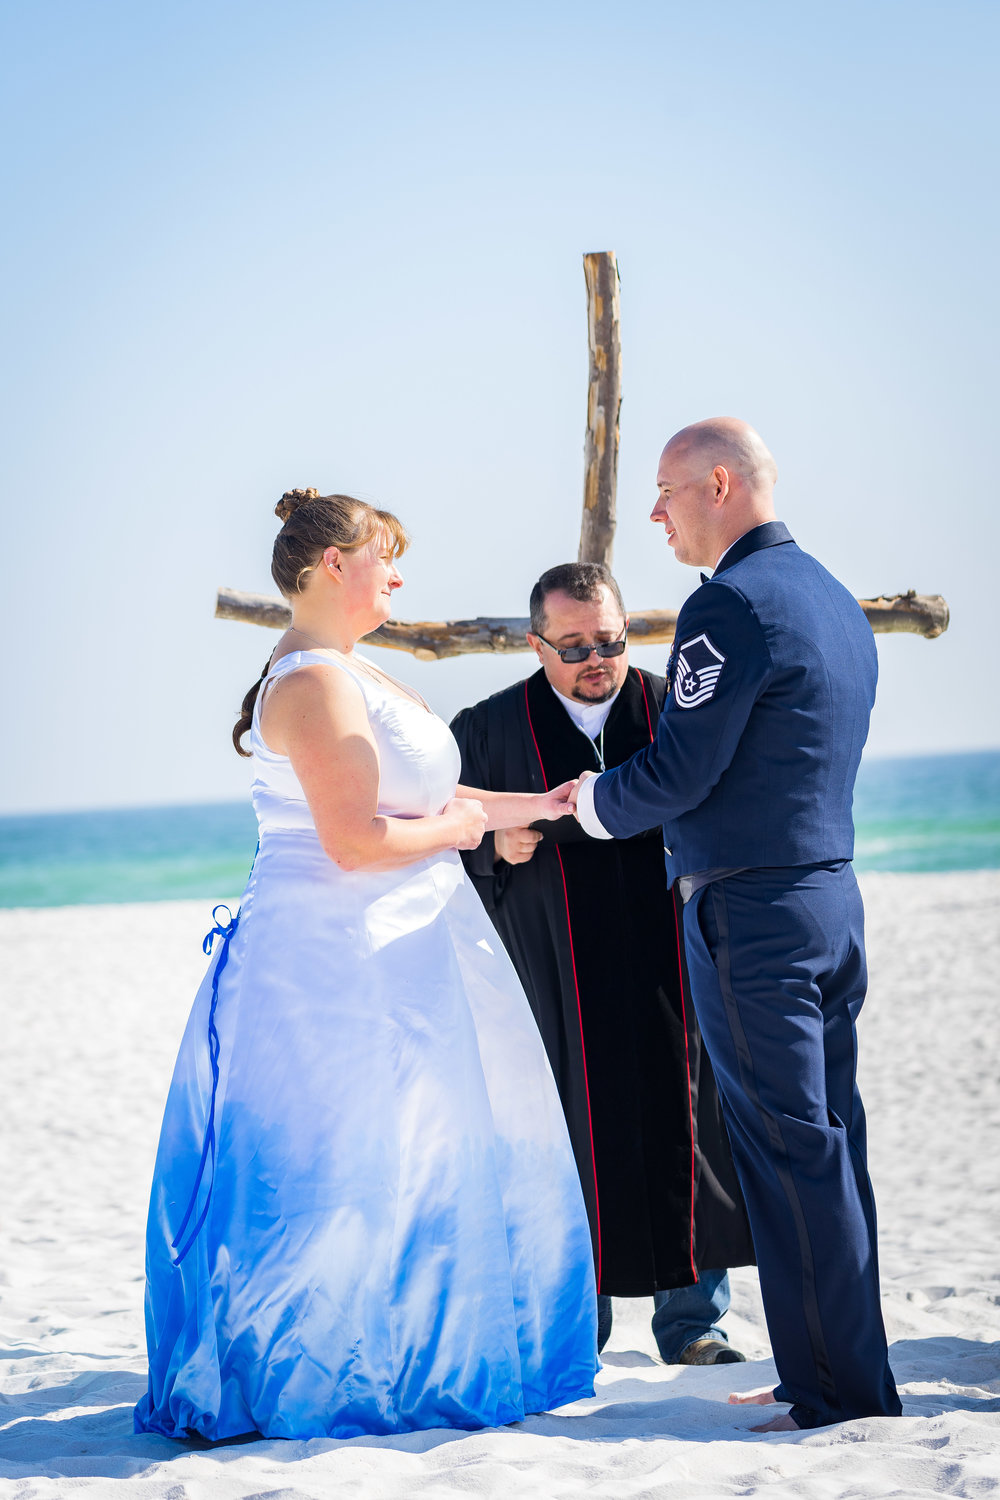 image of couple holding hands during pensacola beach wedding ceremony by photographer adam cotton